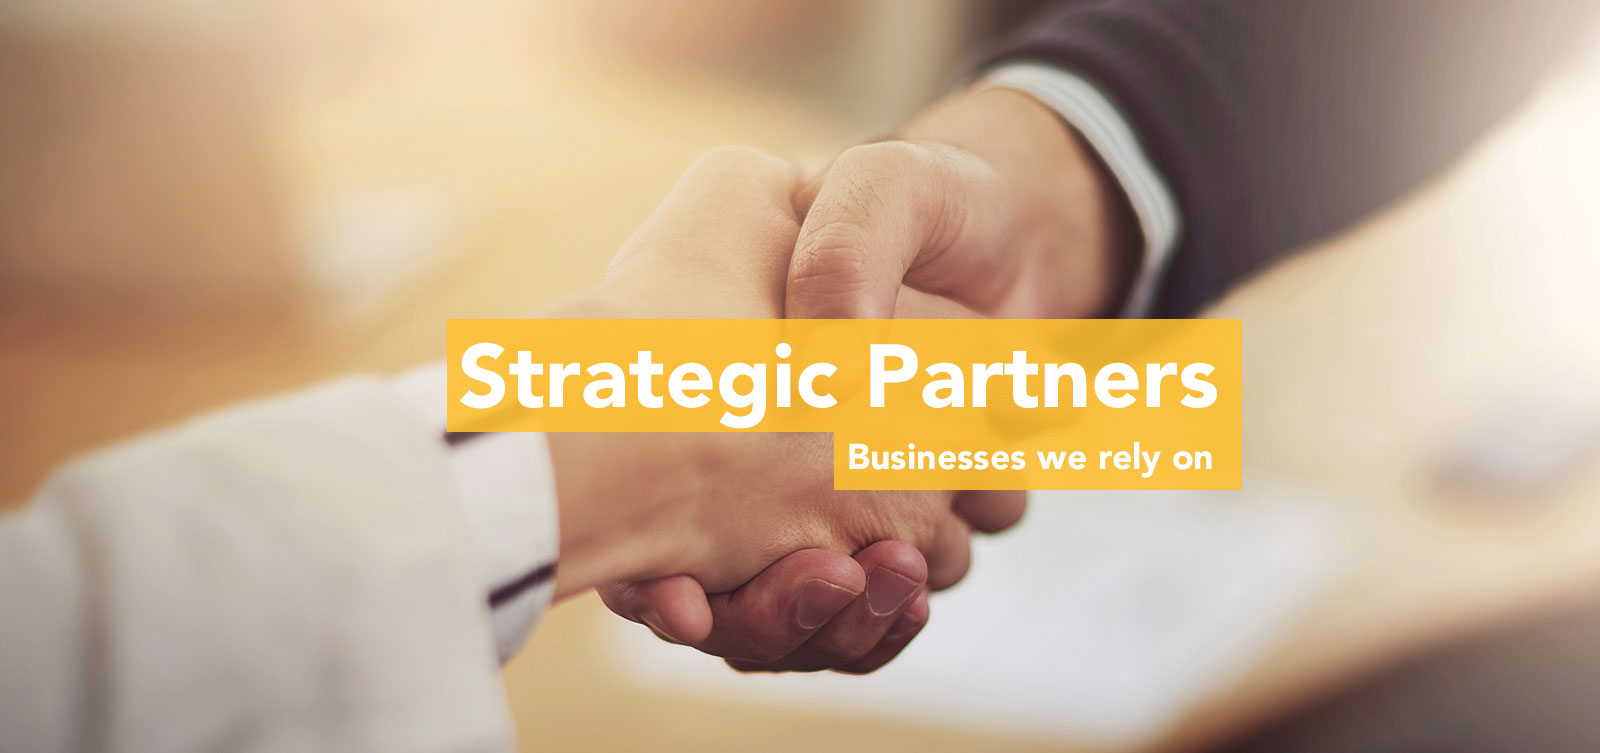 header-strategic-partners